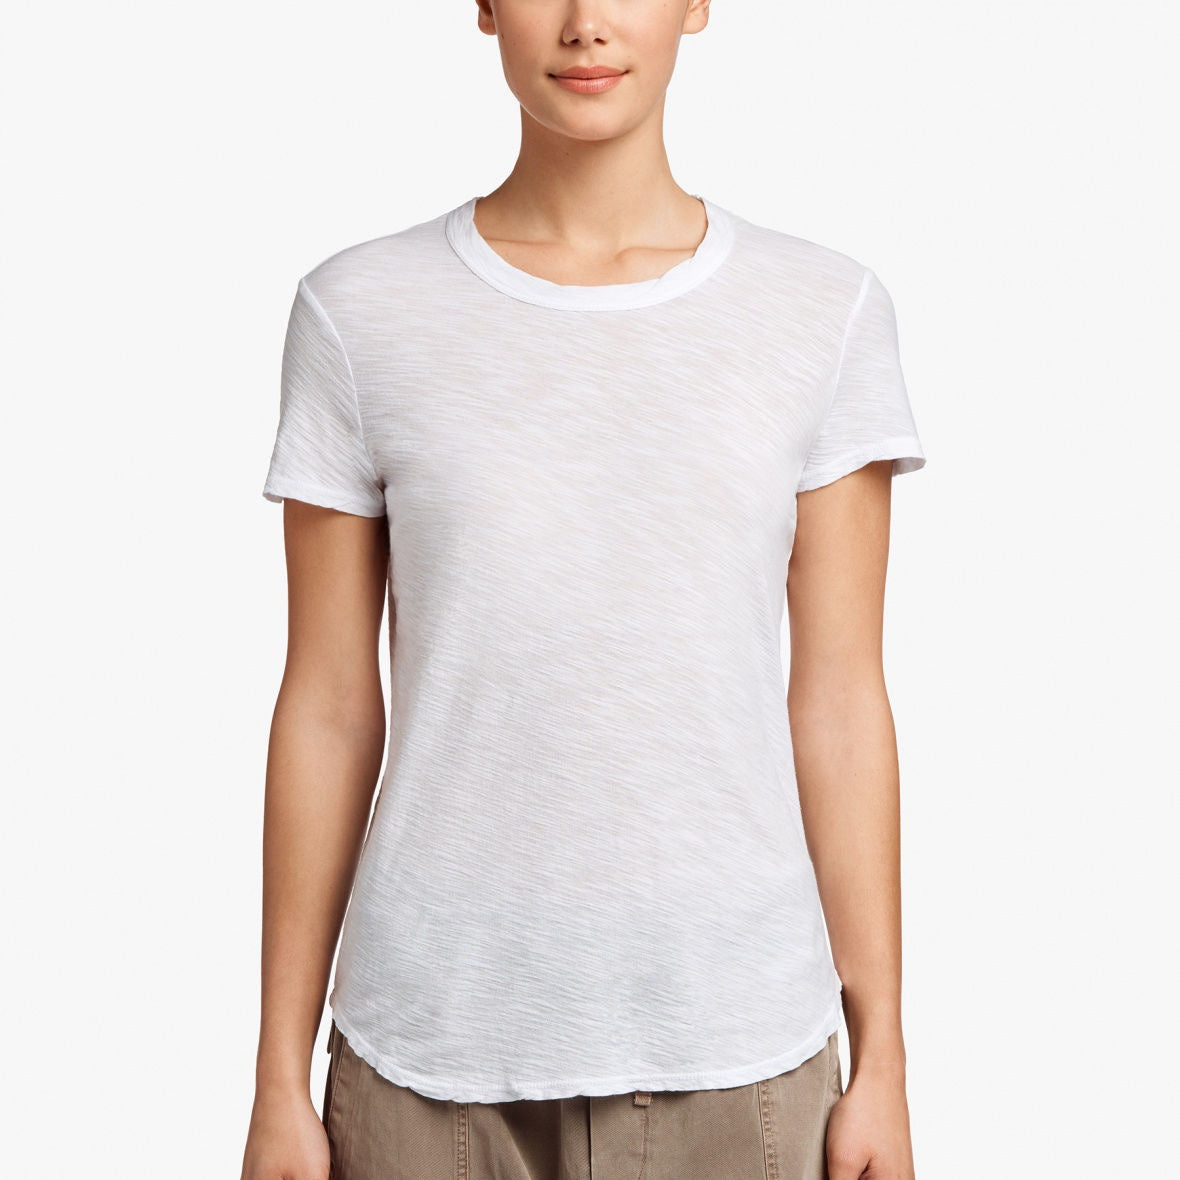 James Perse - Sheer Slub Crew Neck Tee - White